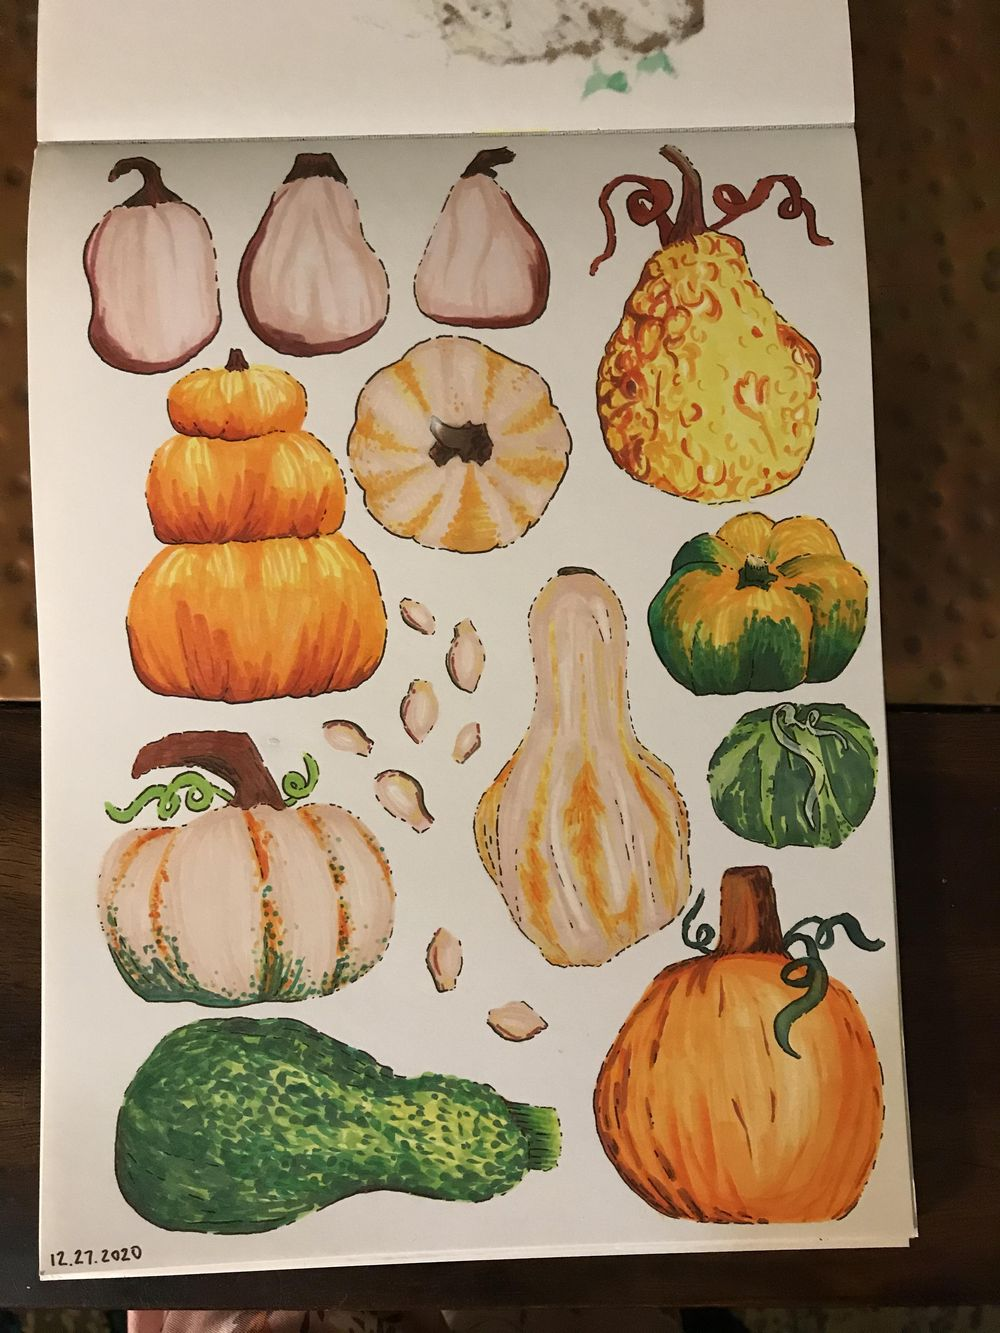 Pumpkins and Gourds - image 1 - student project